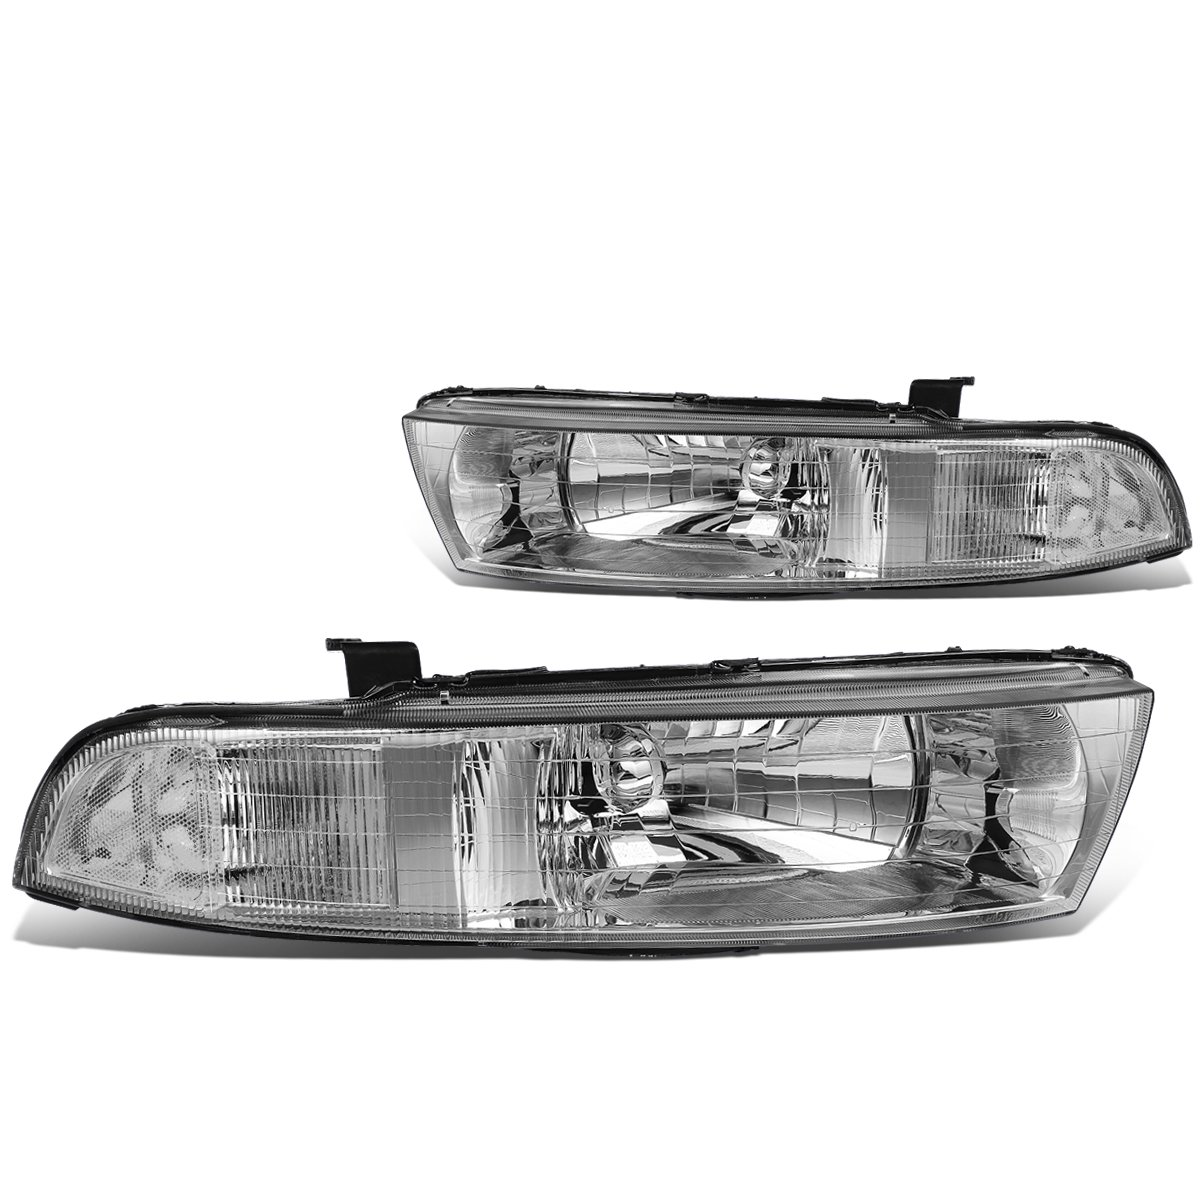 For 99-03 Mitsubishi Galant DNA Motoring HL-OH-068-CH-CL1 Chrome Housing Headlights